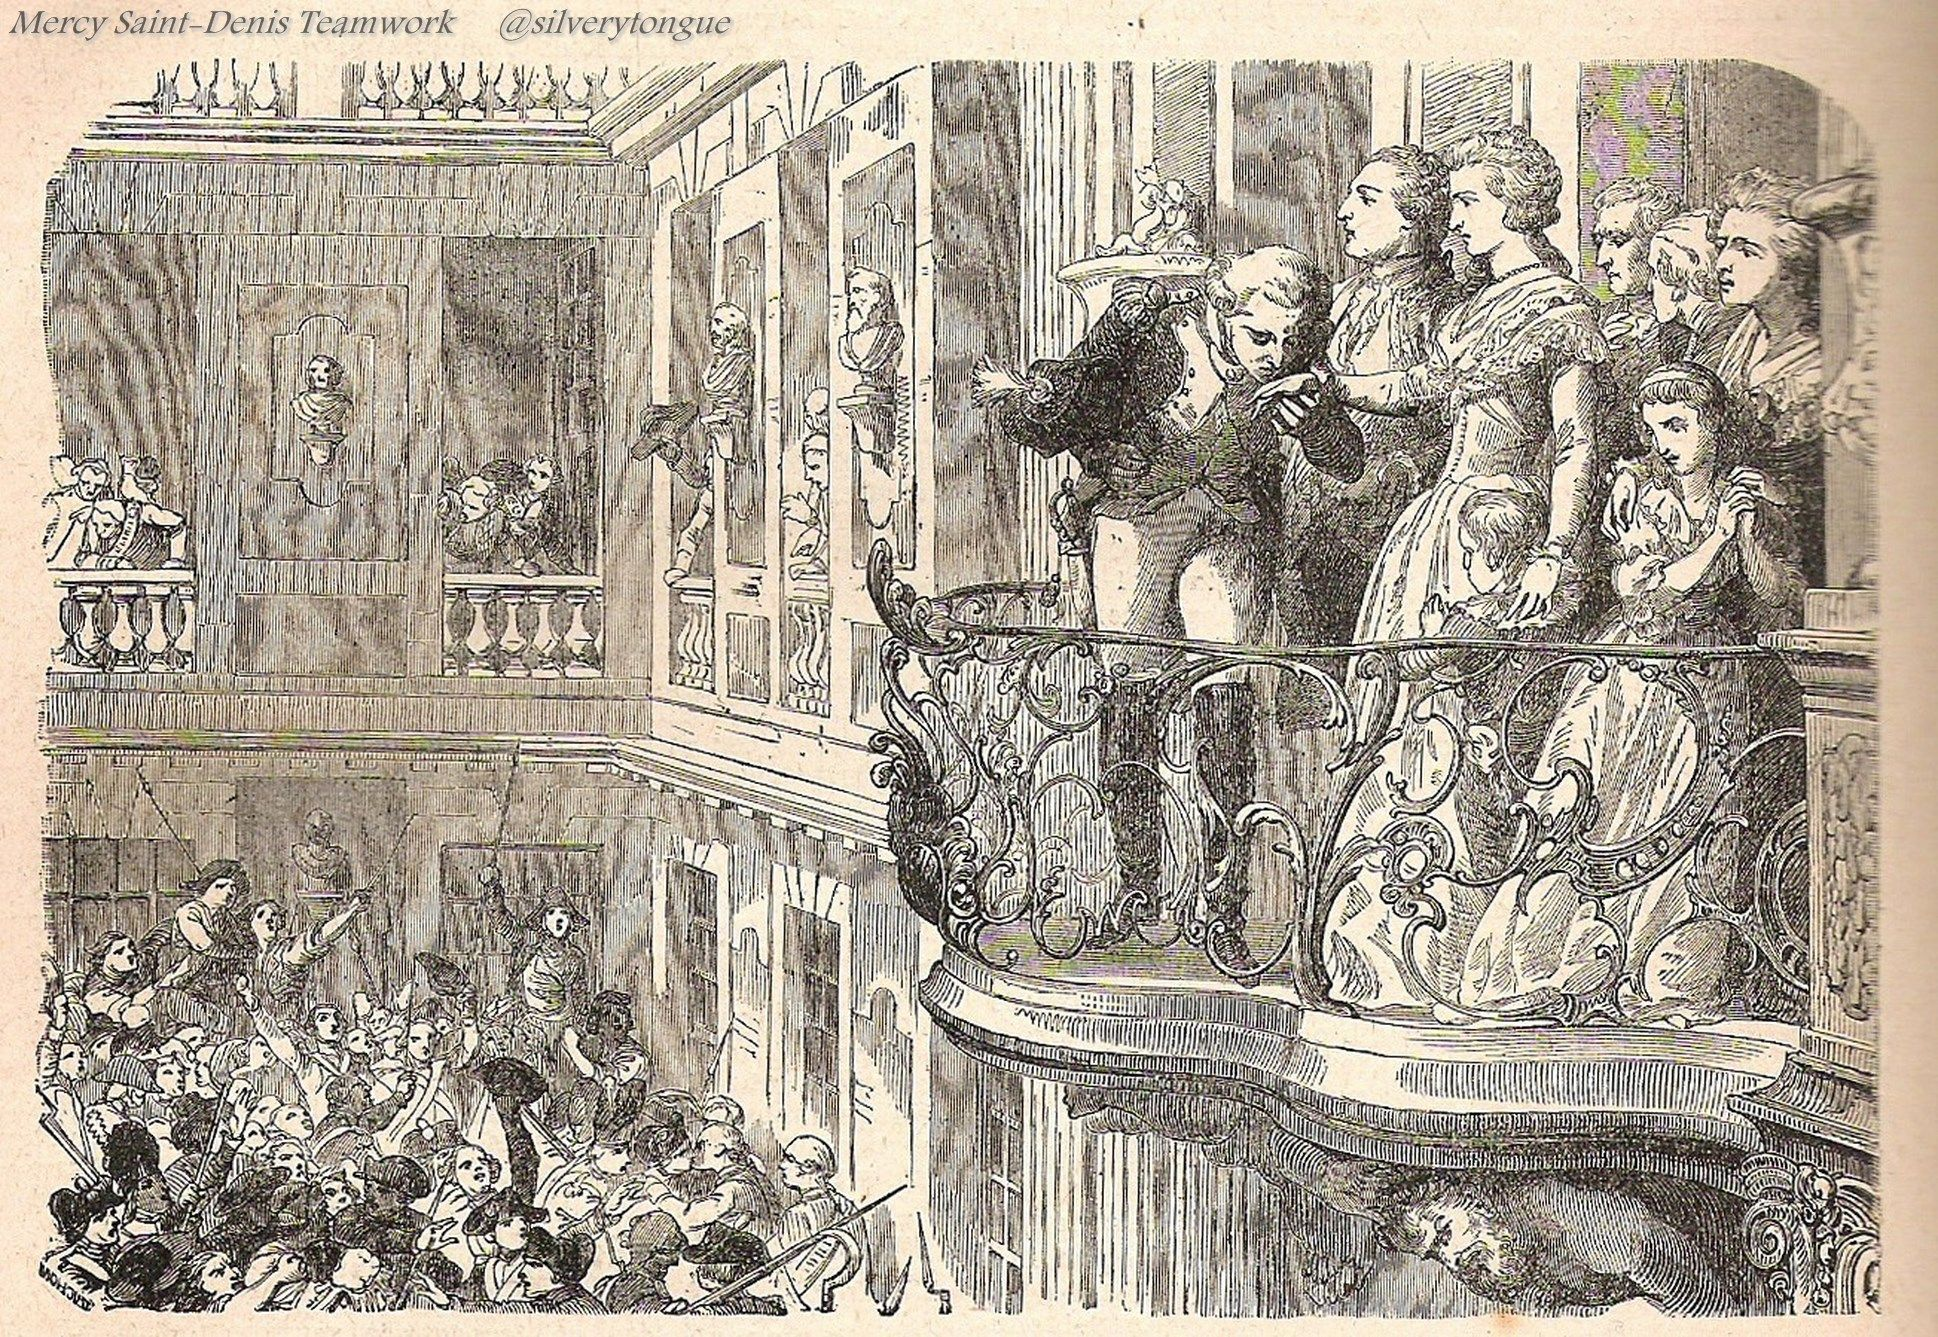 La Fayette and Marie Antoinette 6th october 1789.